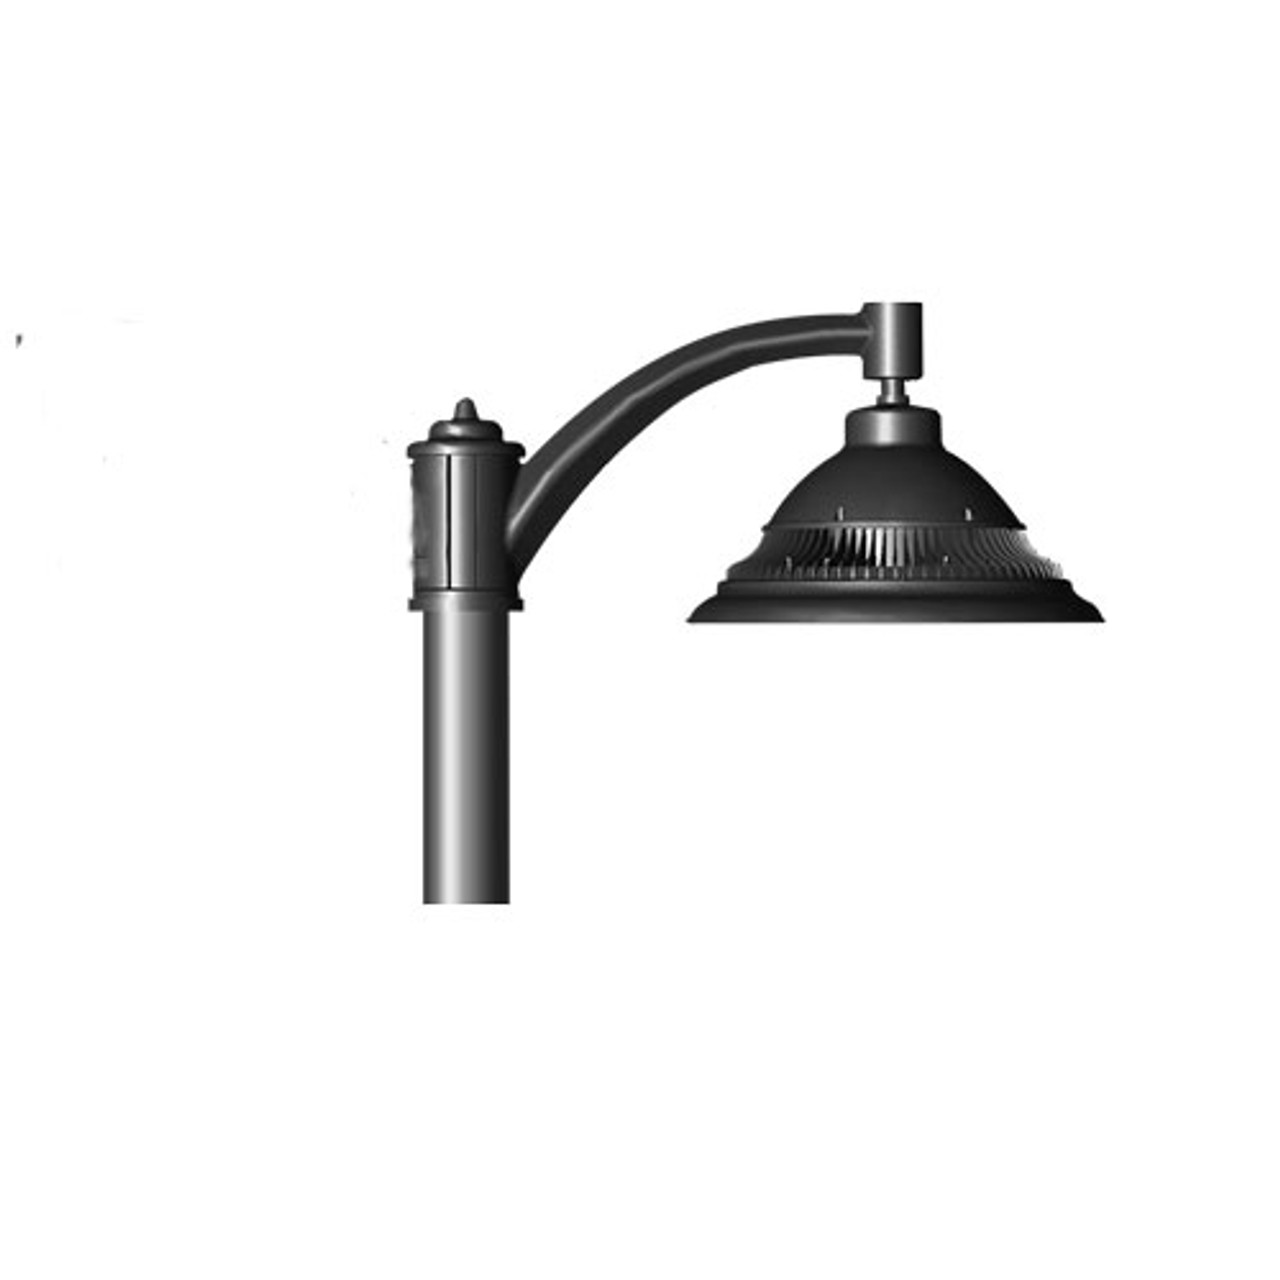 Single Pendant 37 Watt LED Decorative Pole Mount